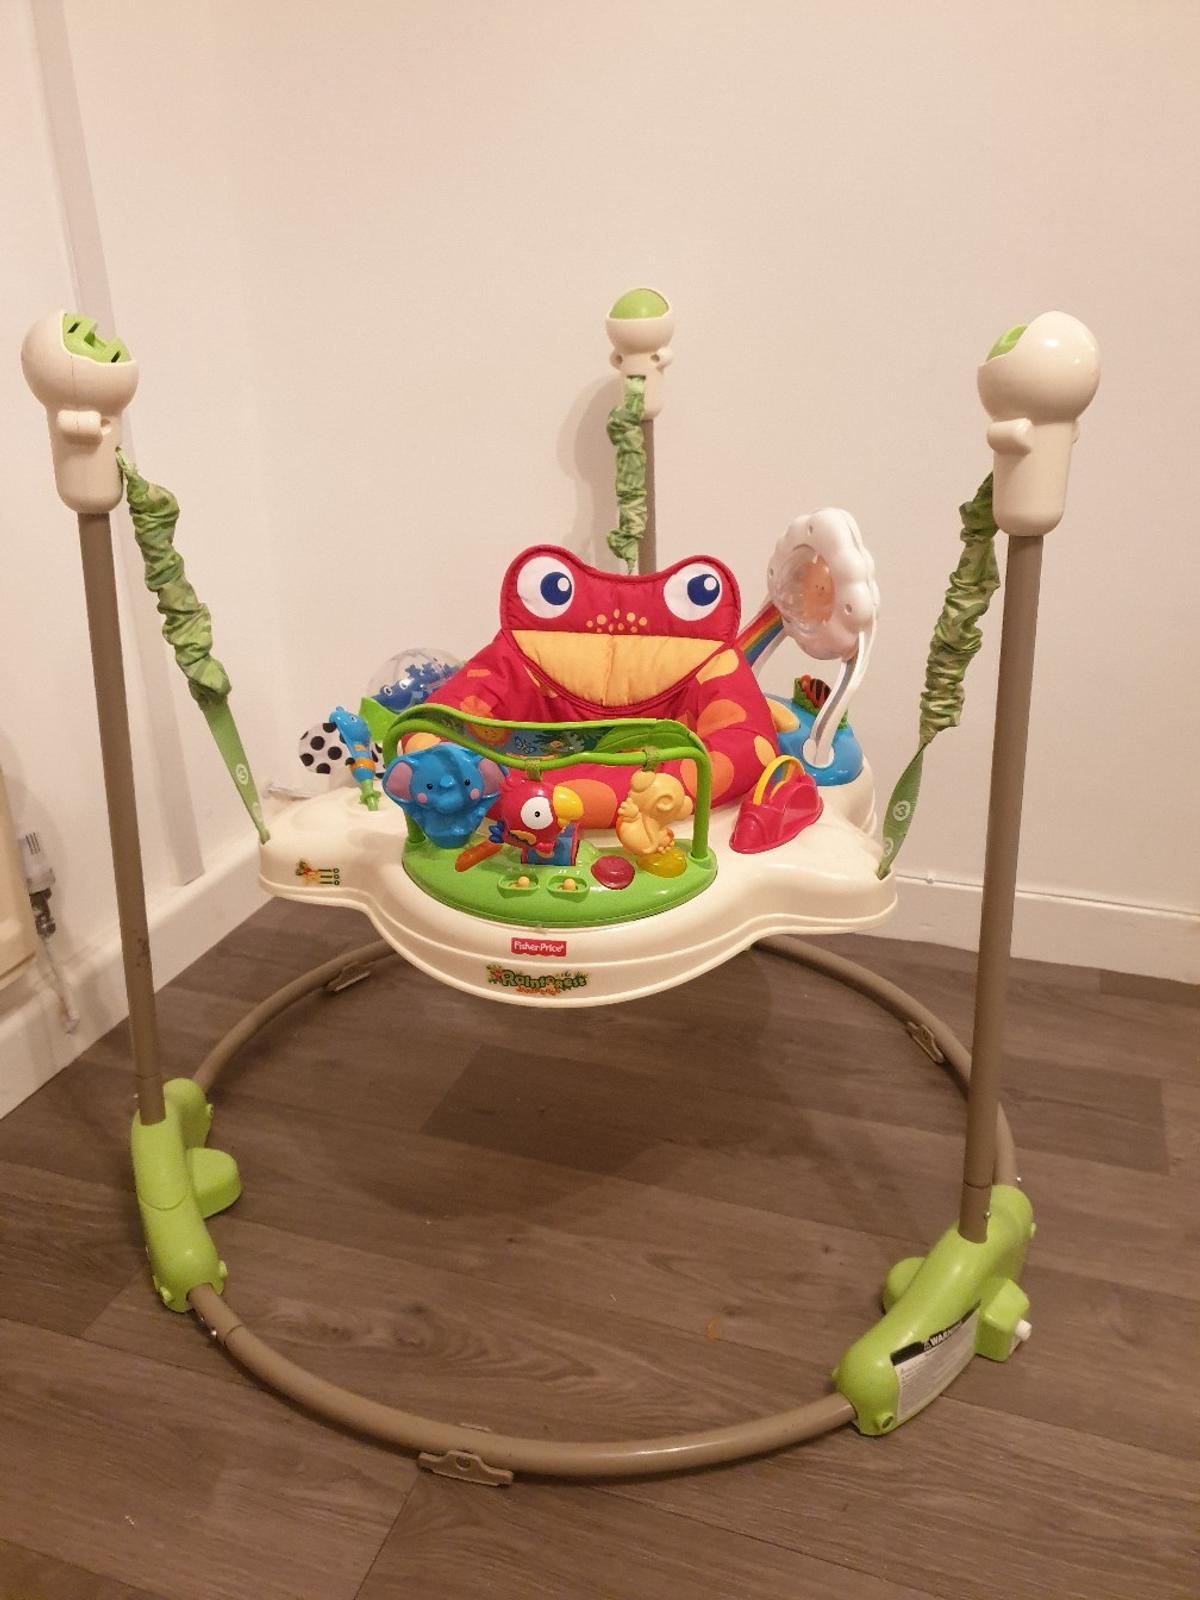 jumperoo great condition missing 2 overhead leaves but does not affect use collection only please :) please see pics